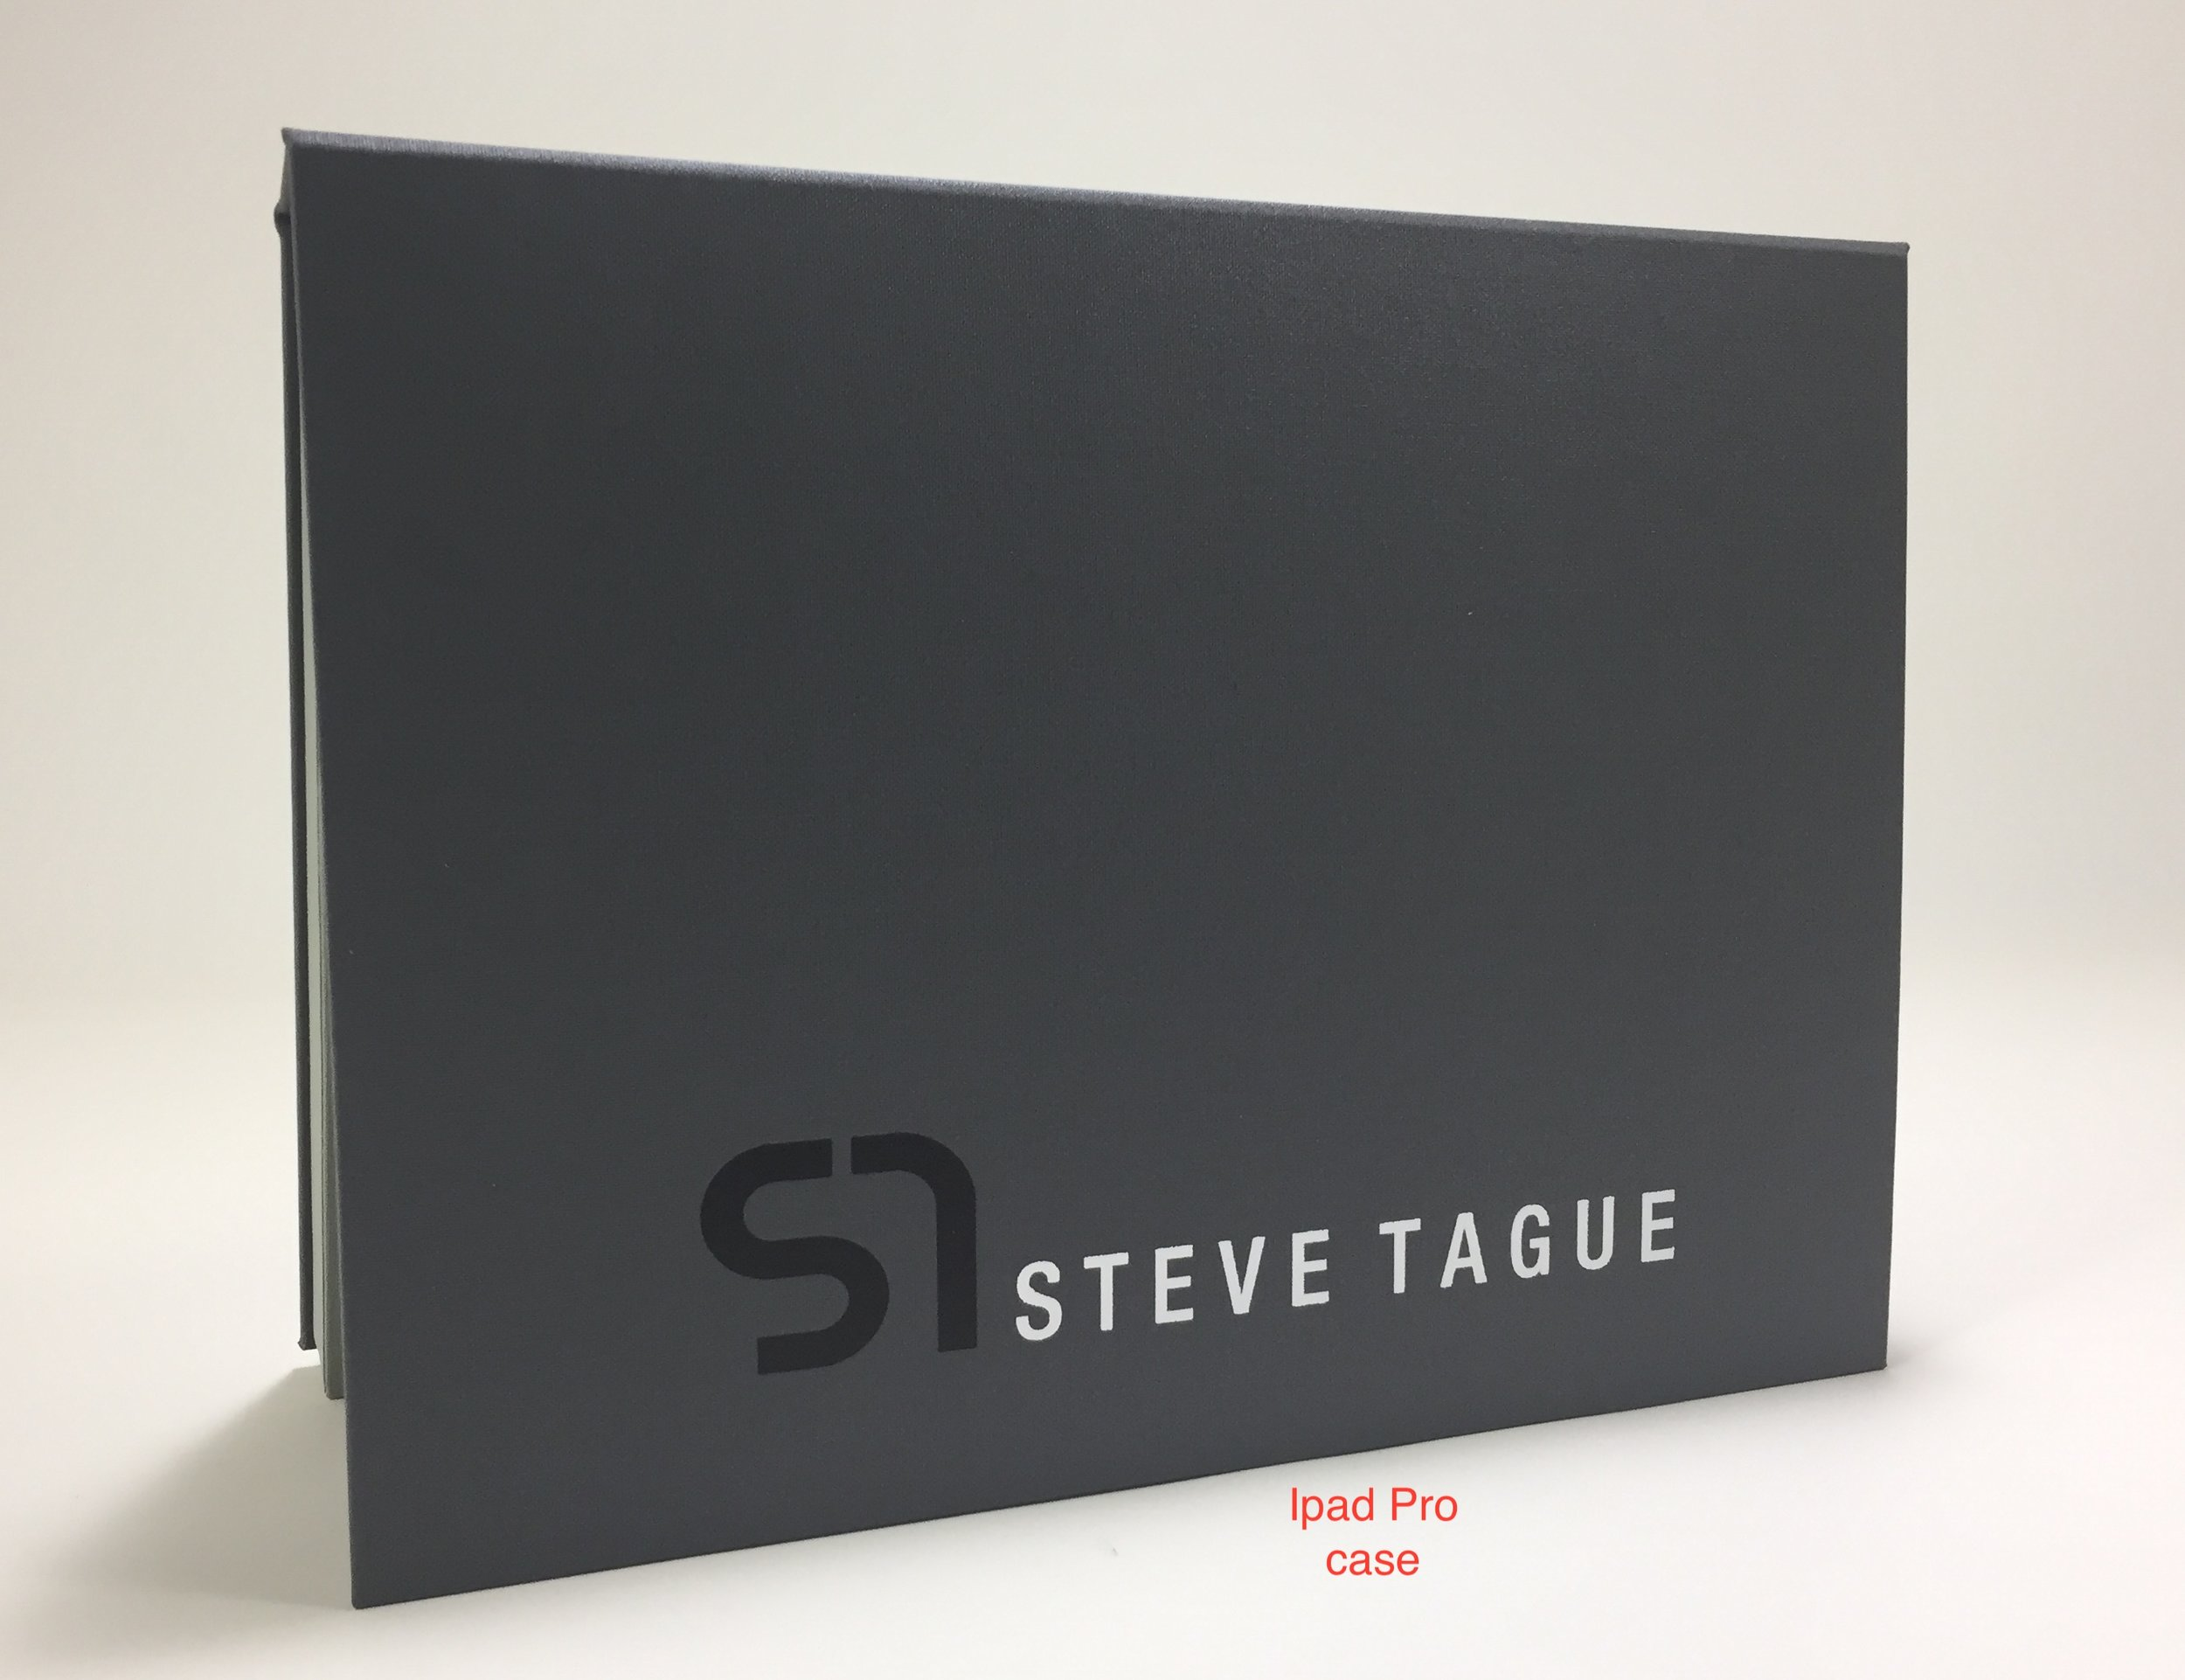 Steve Tague Ipad case.jpg